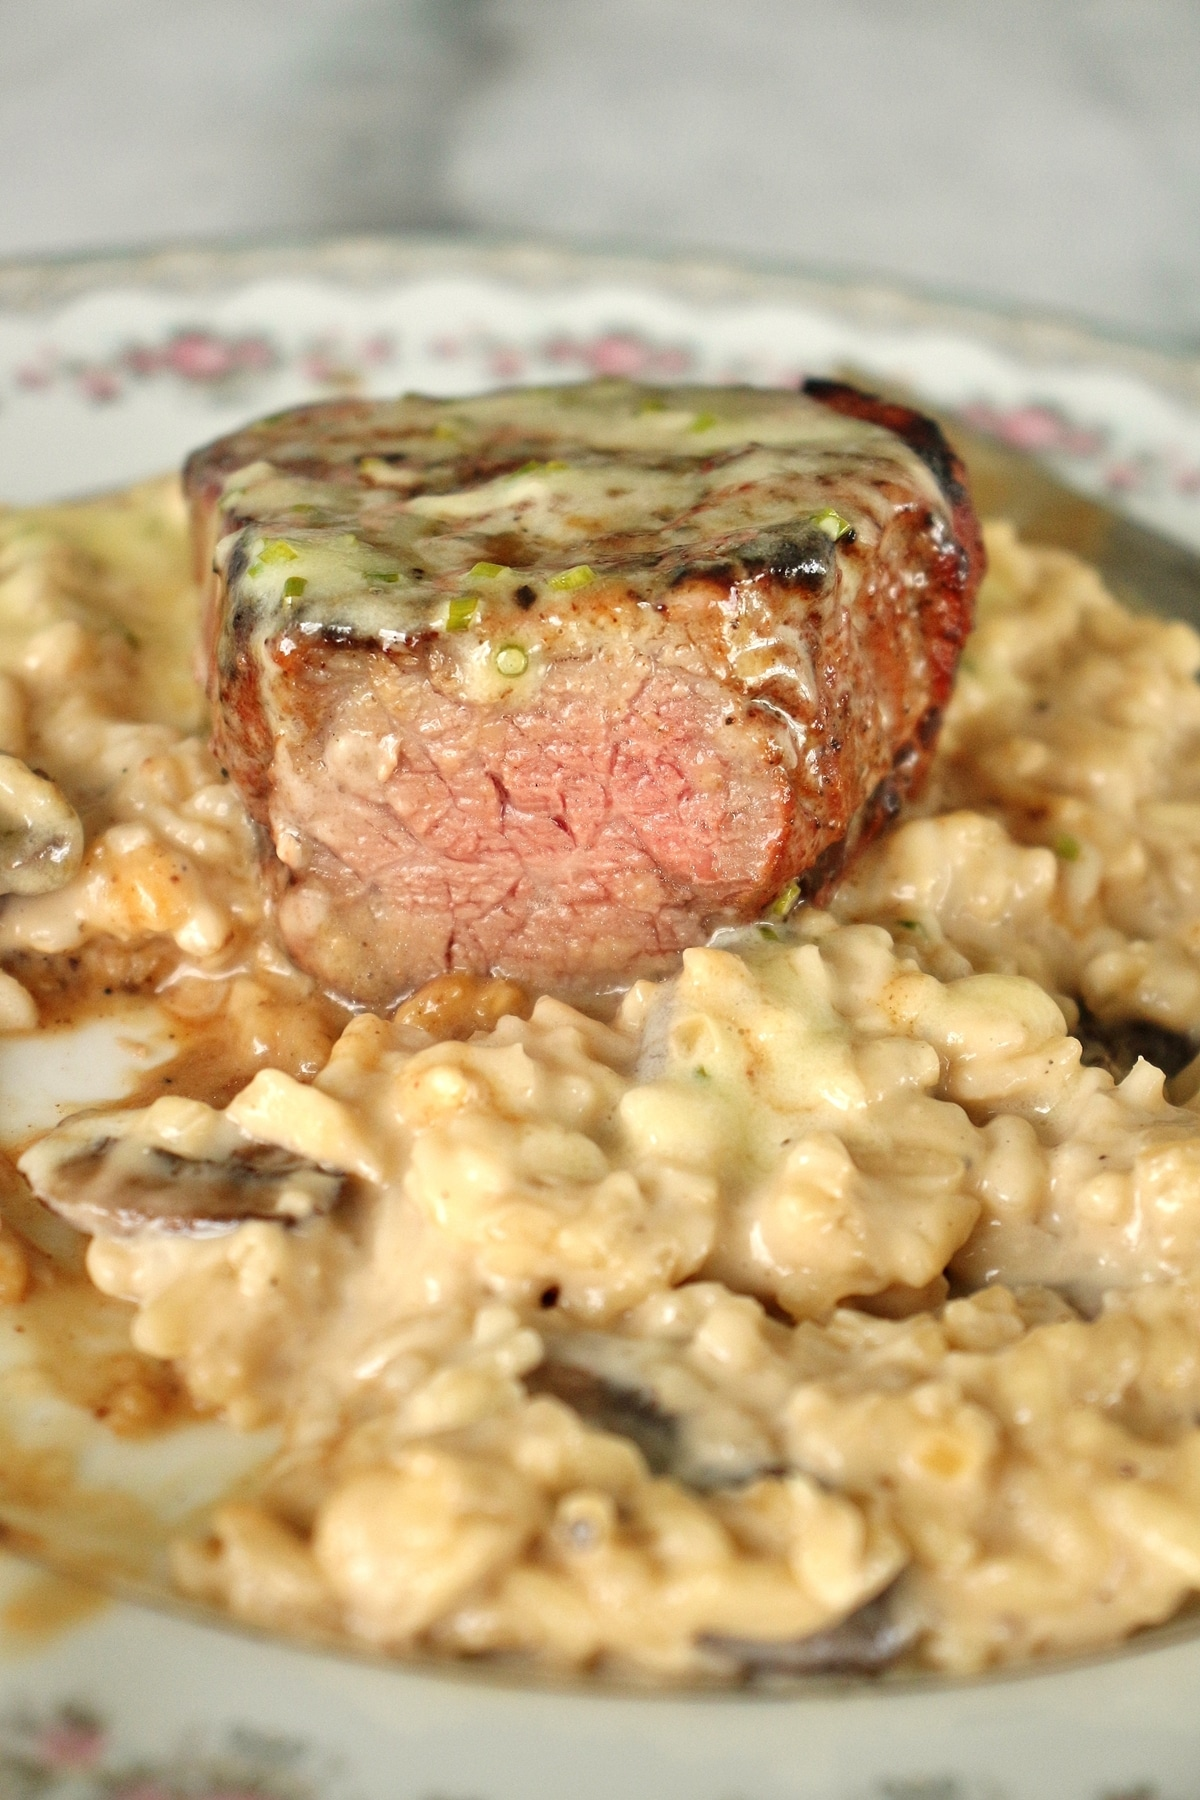 sliced Le Cellier filet mignon steak over a bed of mushroom risotto on a china plate